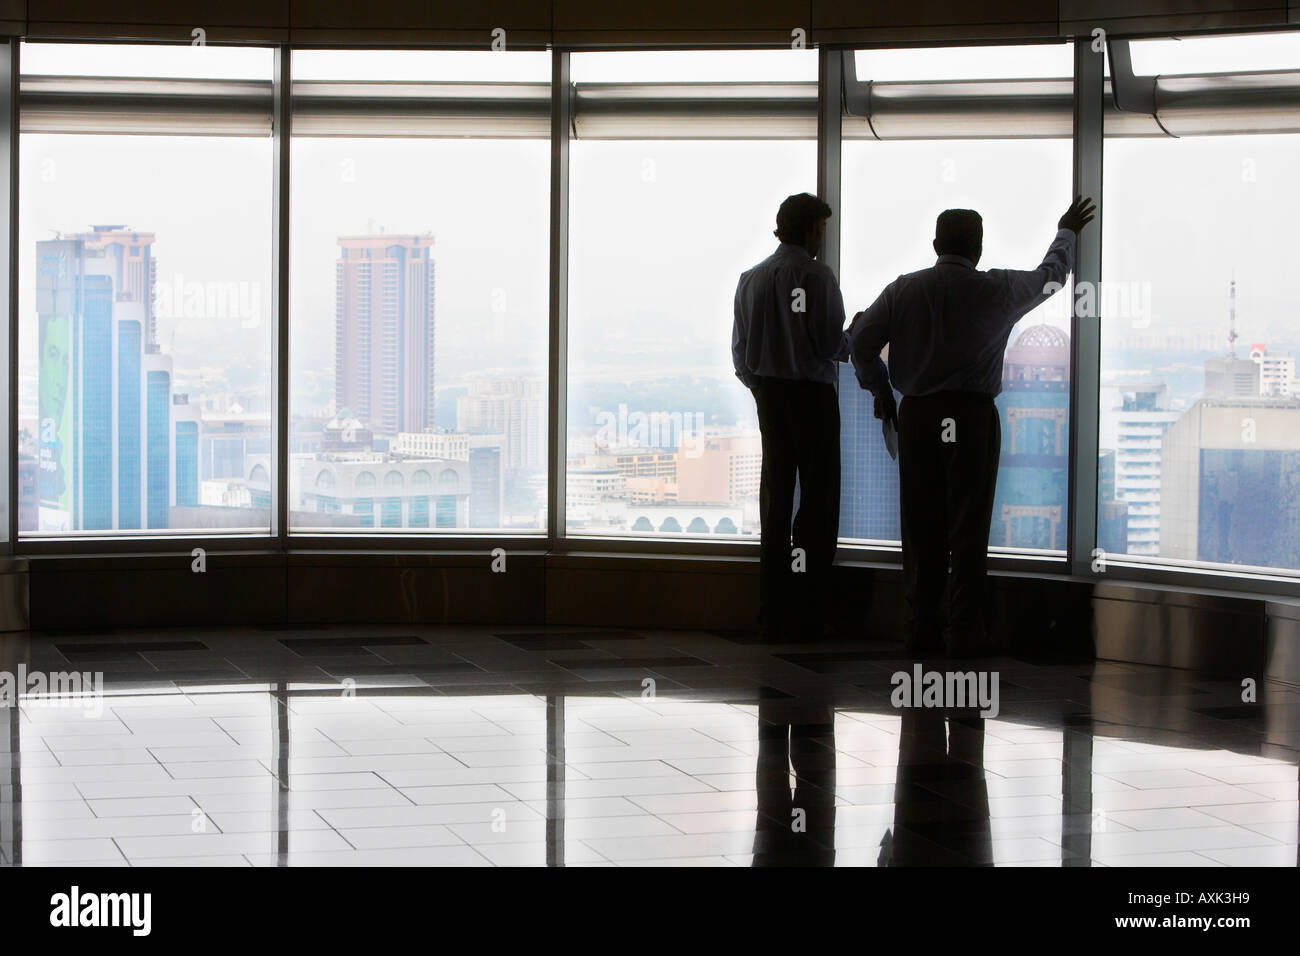 business working stand men male in new city skyscraper building windowns new office reflection floor looking distance - Stock Image